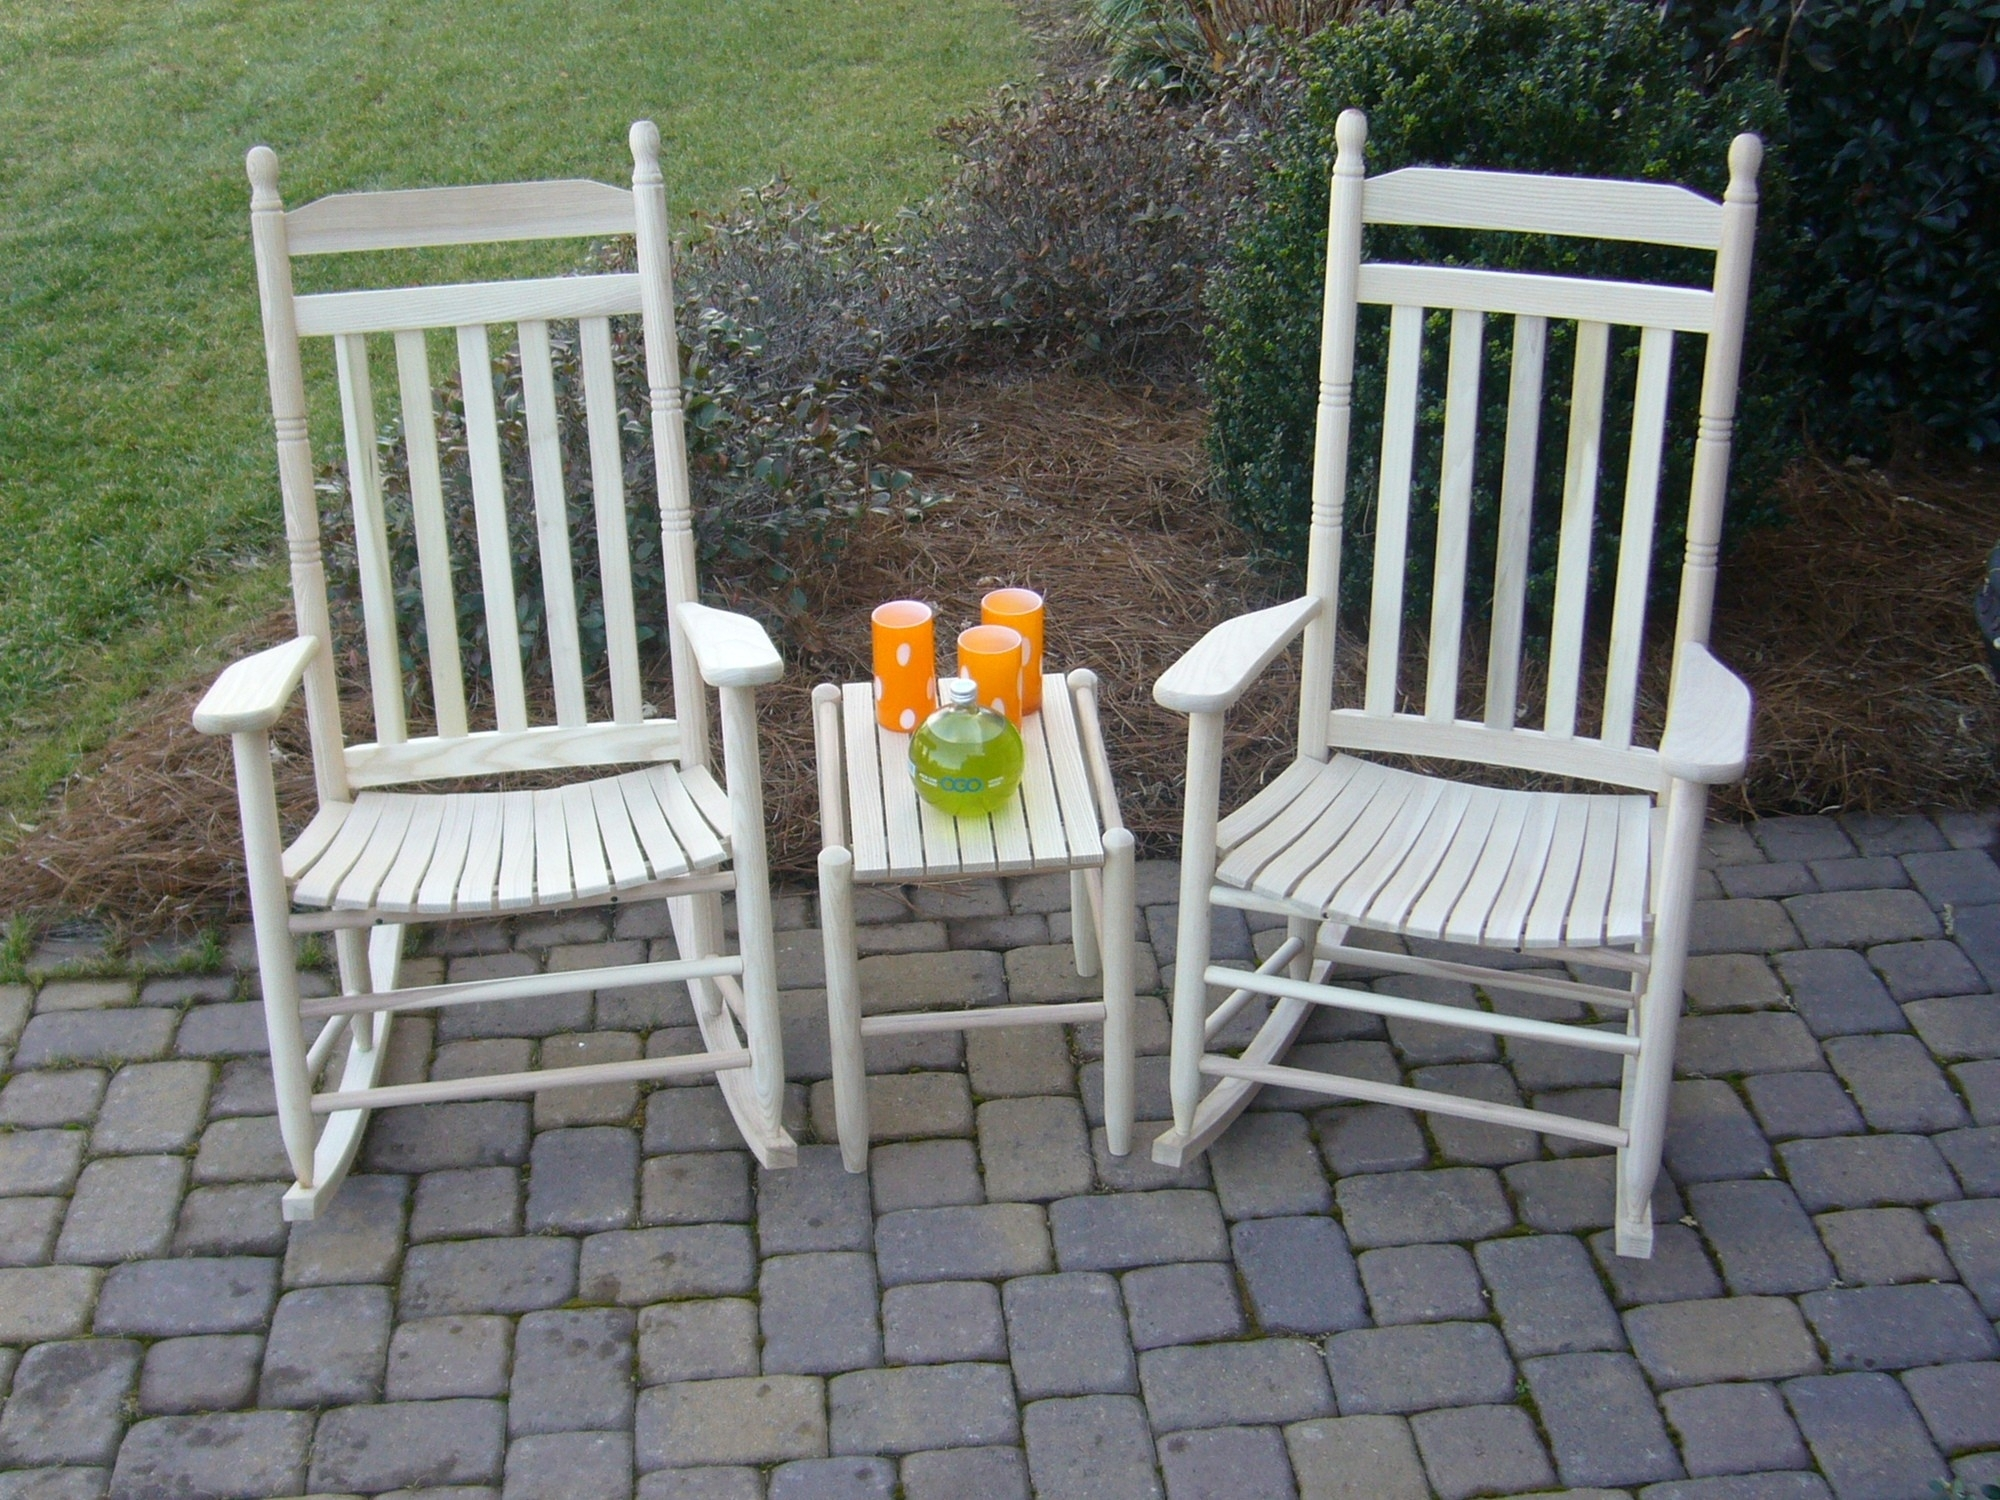 Wooden Outdoor Rocking Chairs For Modern Dixie Seating Standard Within Patio Rocking Chairs And Table (View 14 of 15)